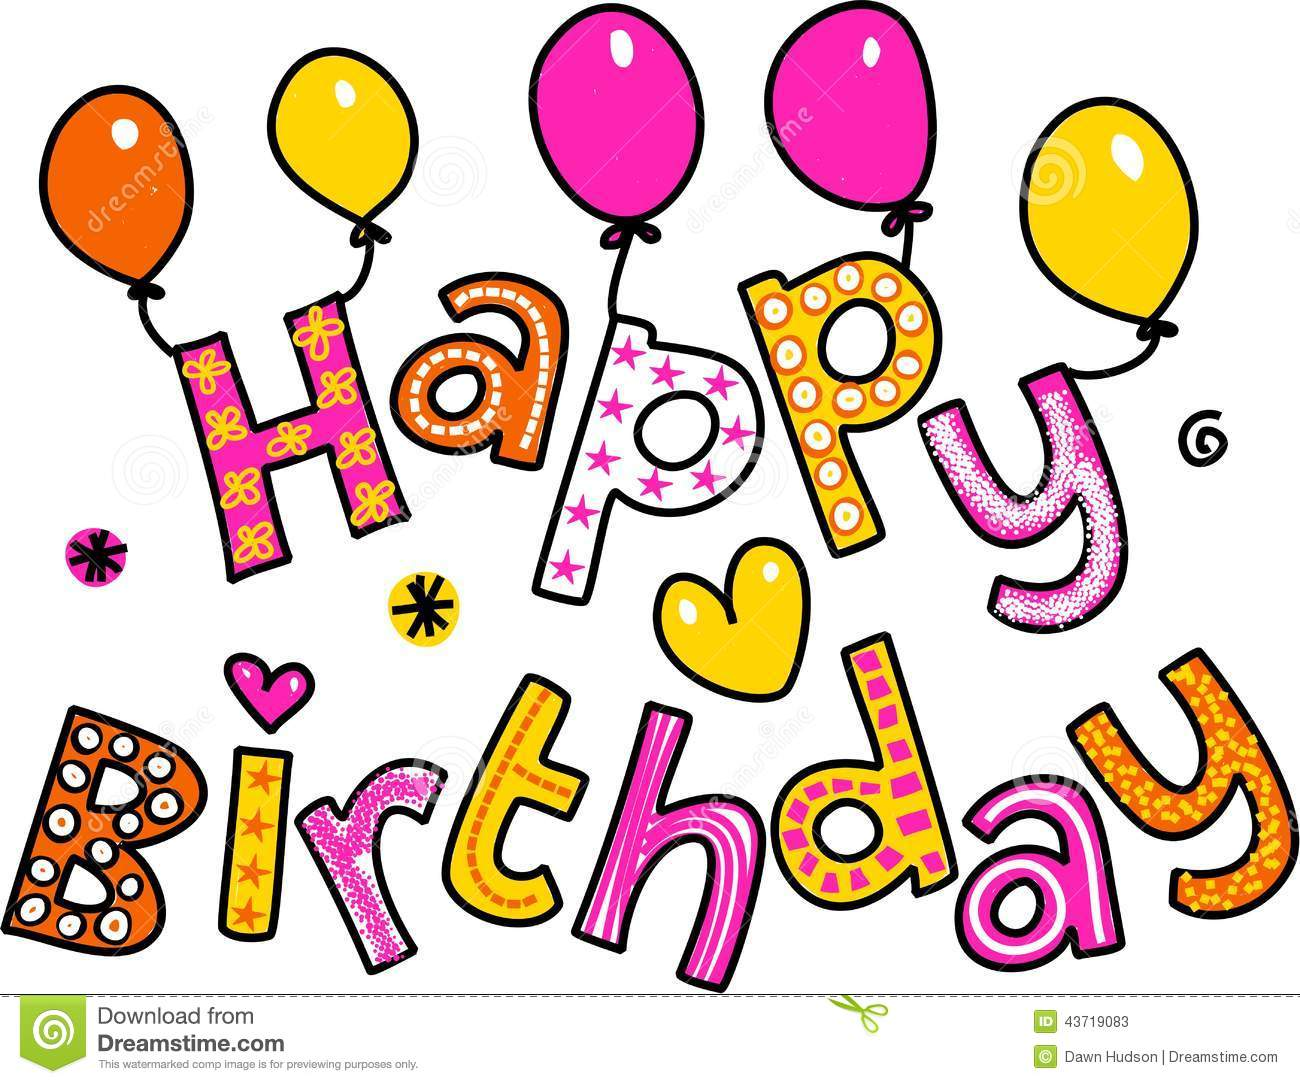 Alles gute clipart graphic library library Alles gute clipart - ClipartFest graphic library library